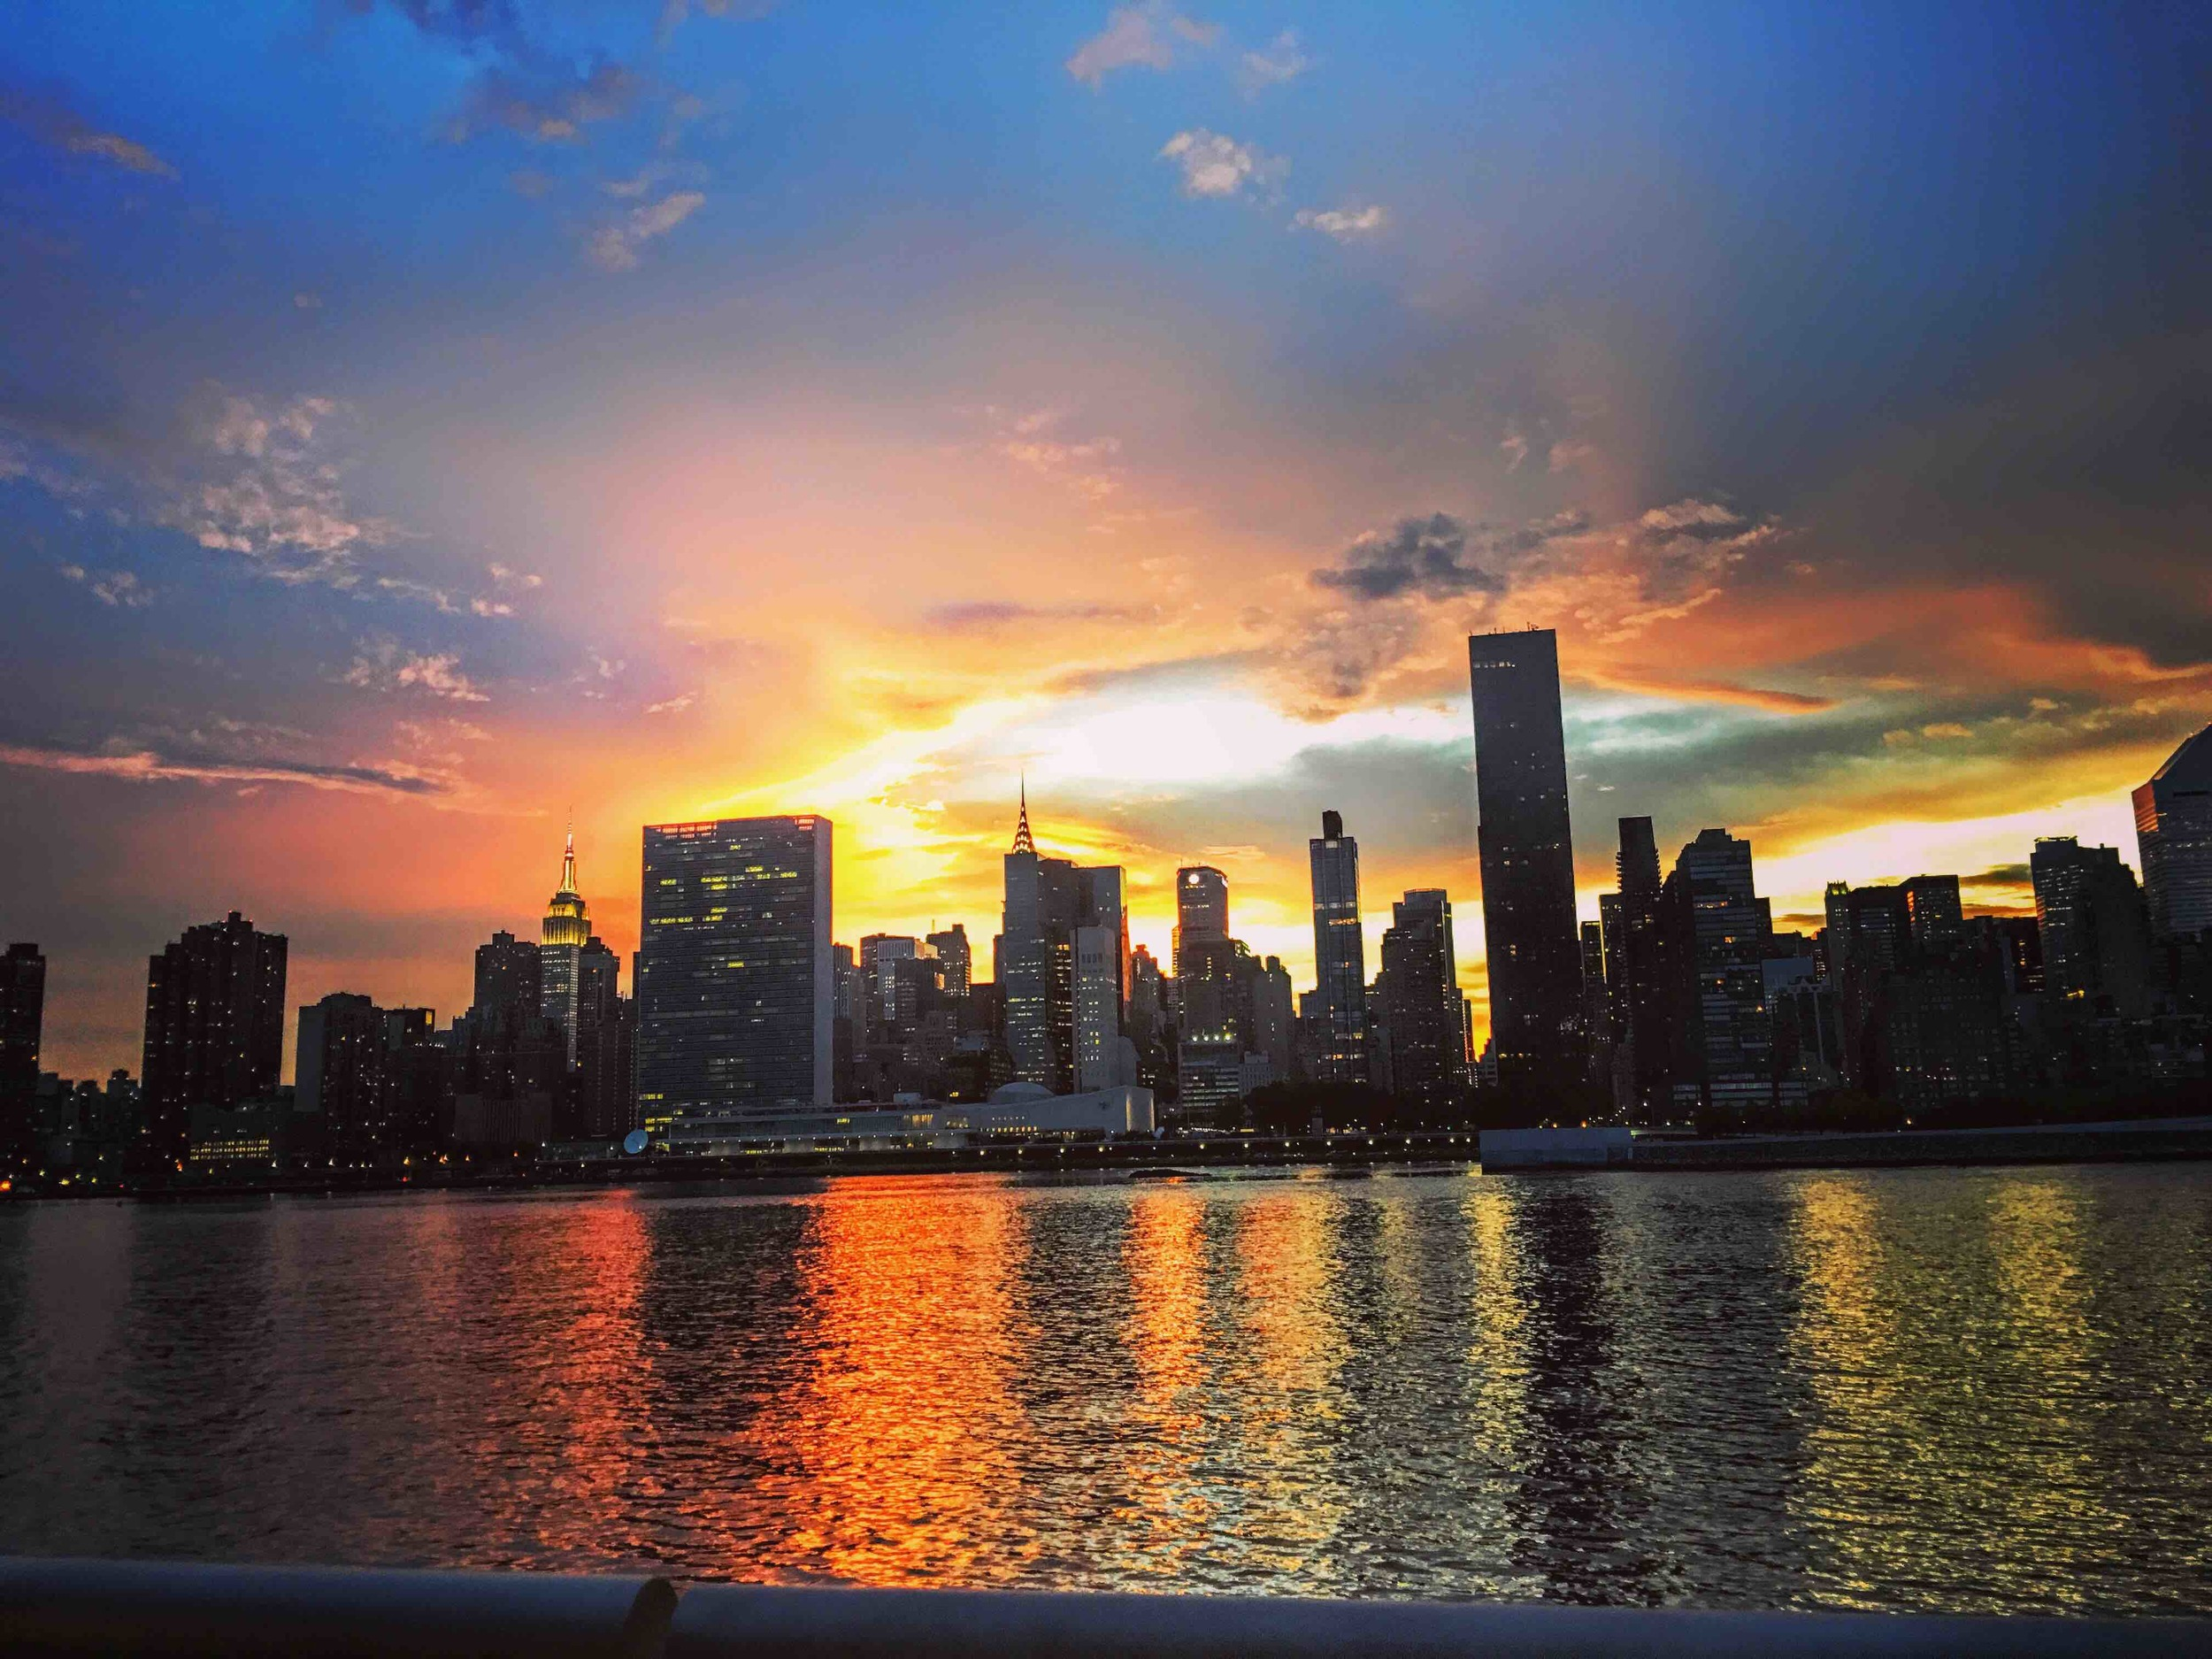 The United Nations building witnessing a beautiful, peaceful sunset –on August 12, 2016